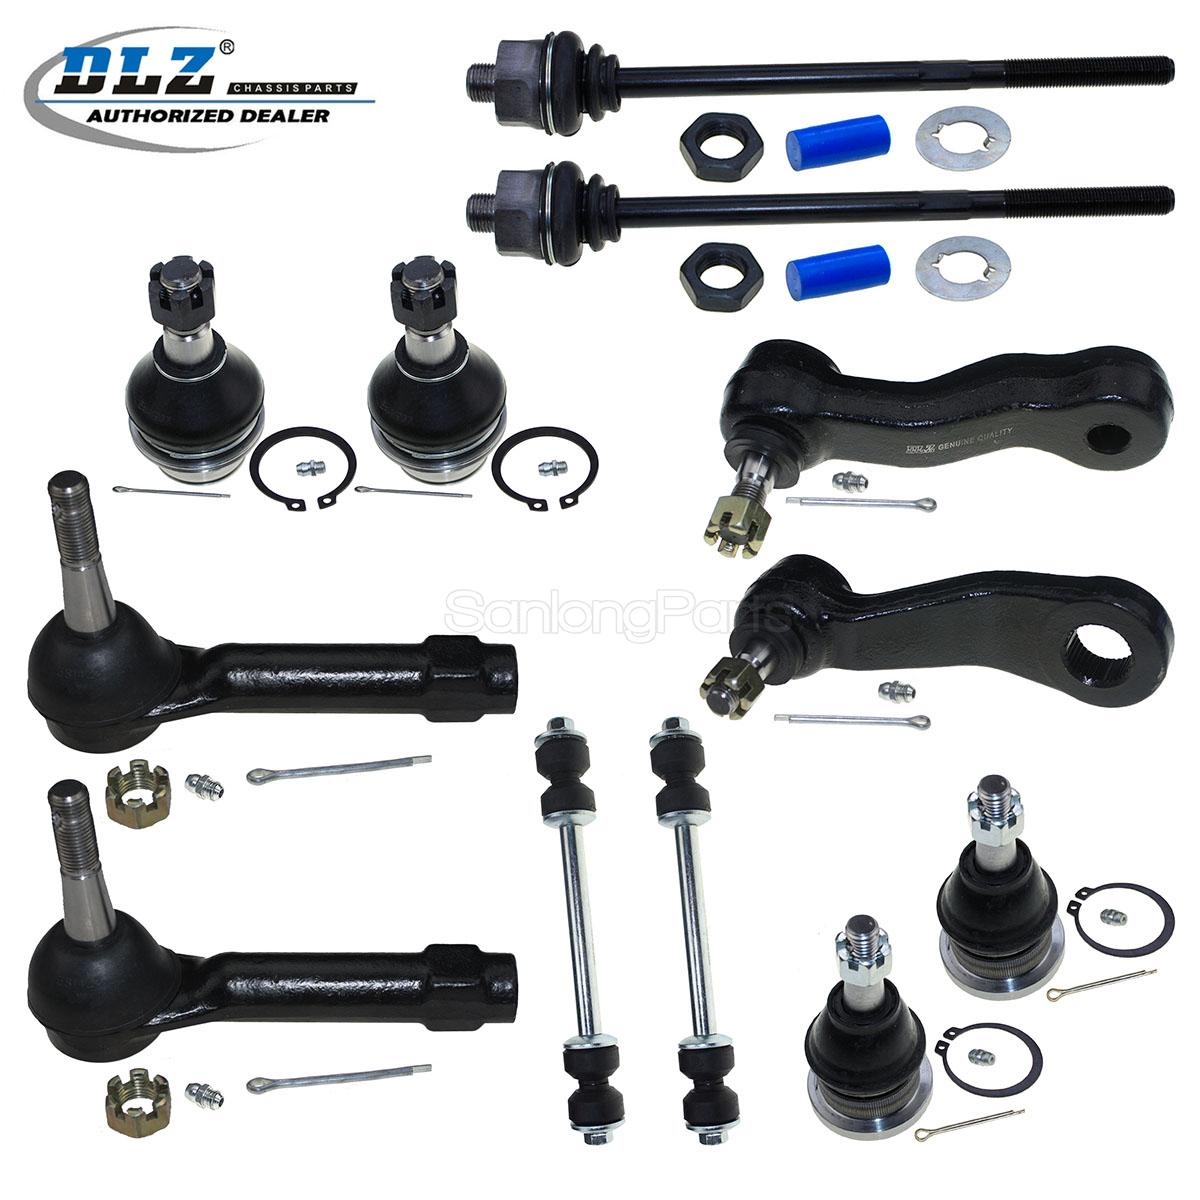 2001 Chevy Silverado 1500 Parts New Front Suspension Kit Ball Joint Pitman Arm For 2001 ...